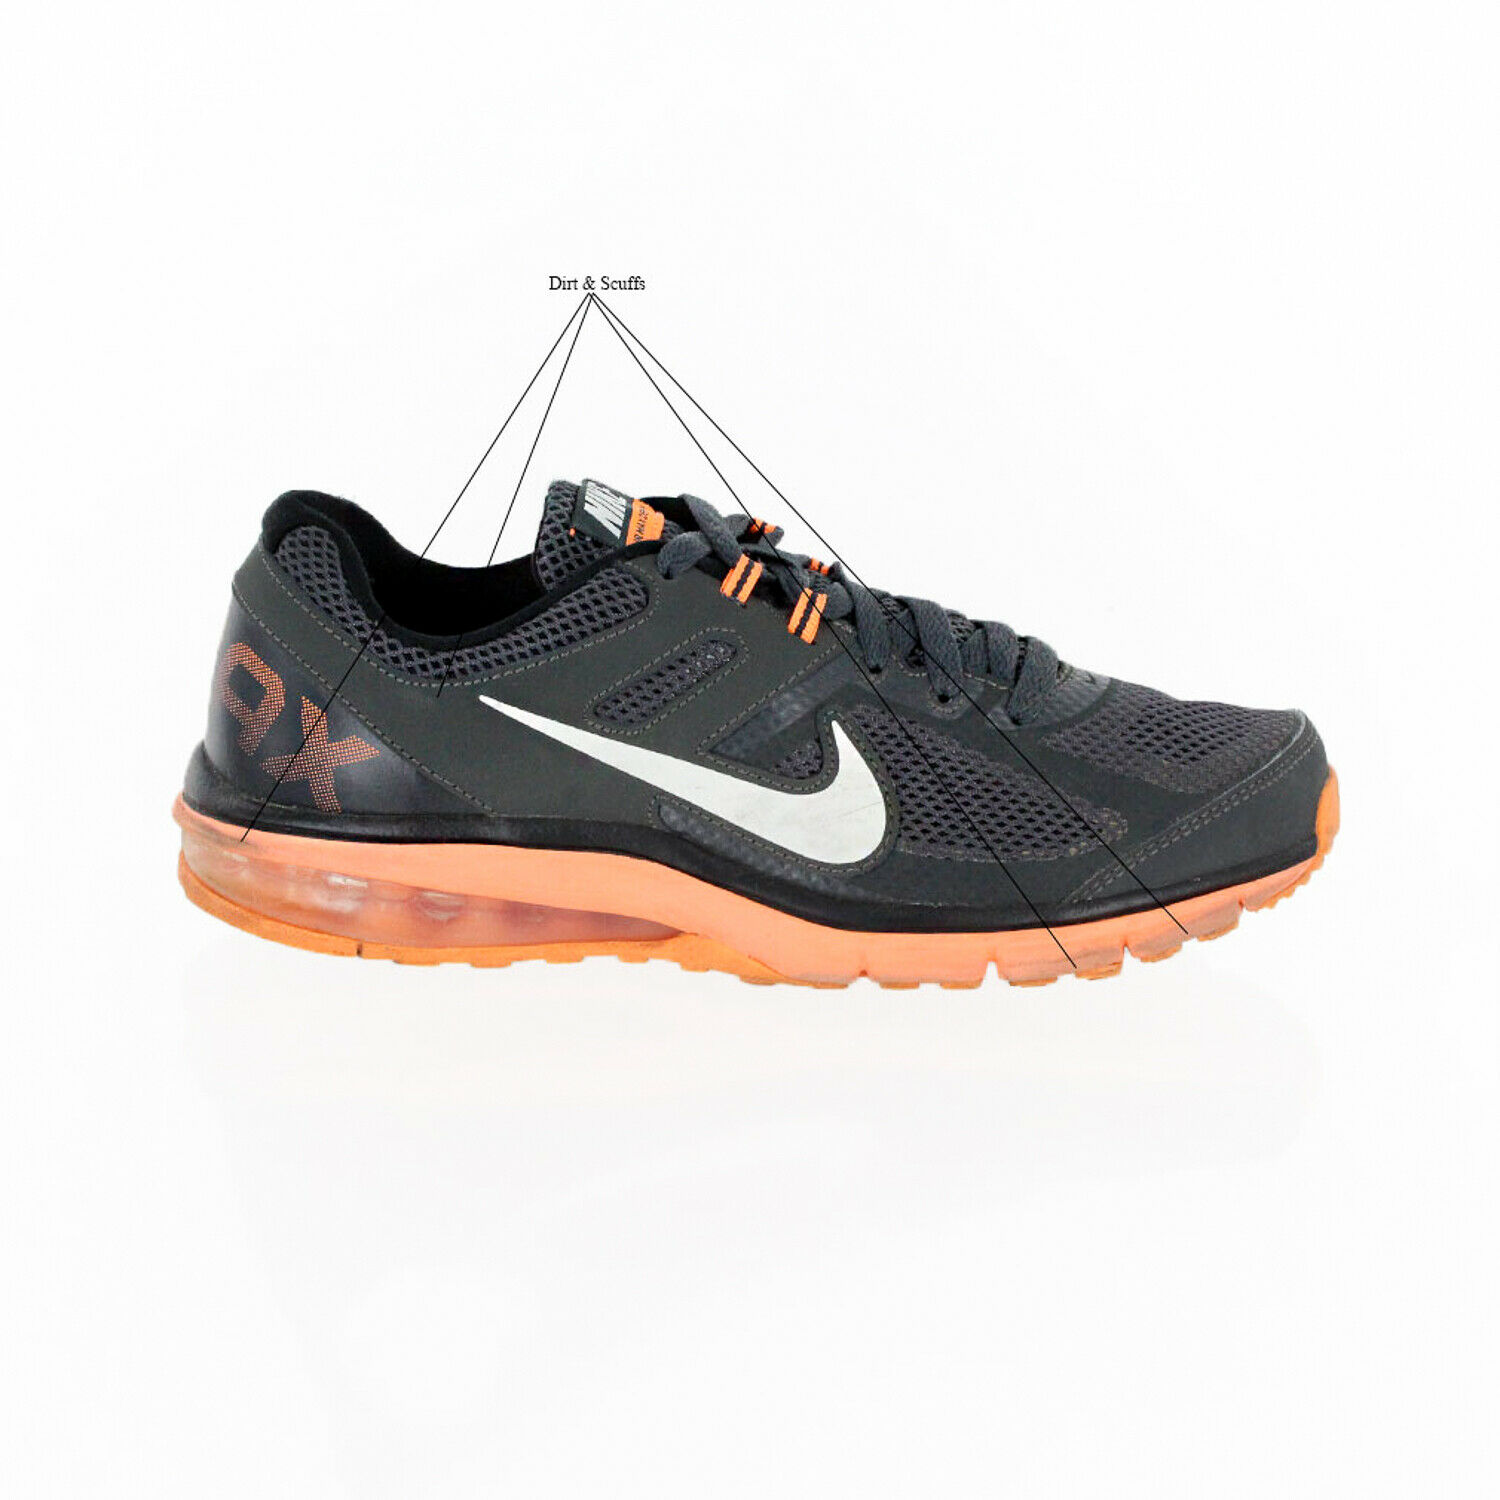 NIKE AIR MAX DEFY RN MENS RUNNING SHOES 599343-008 SIZE 7.5